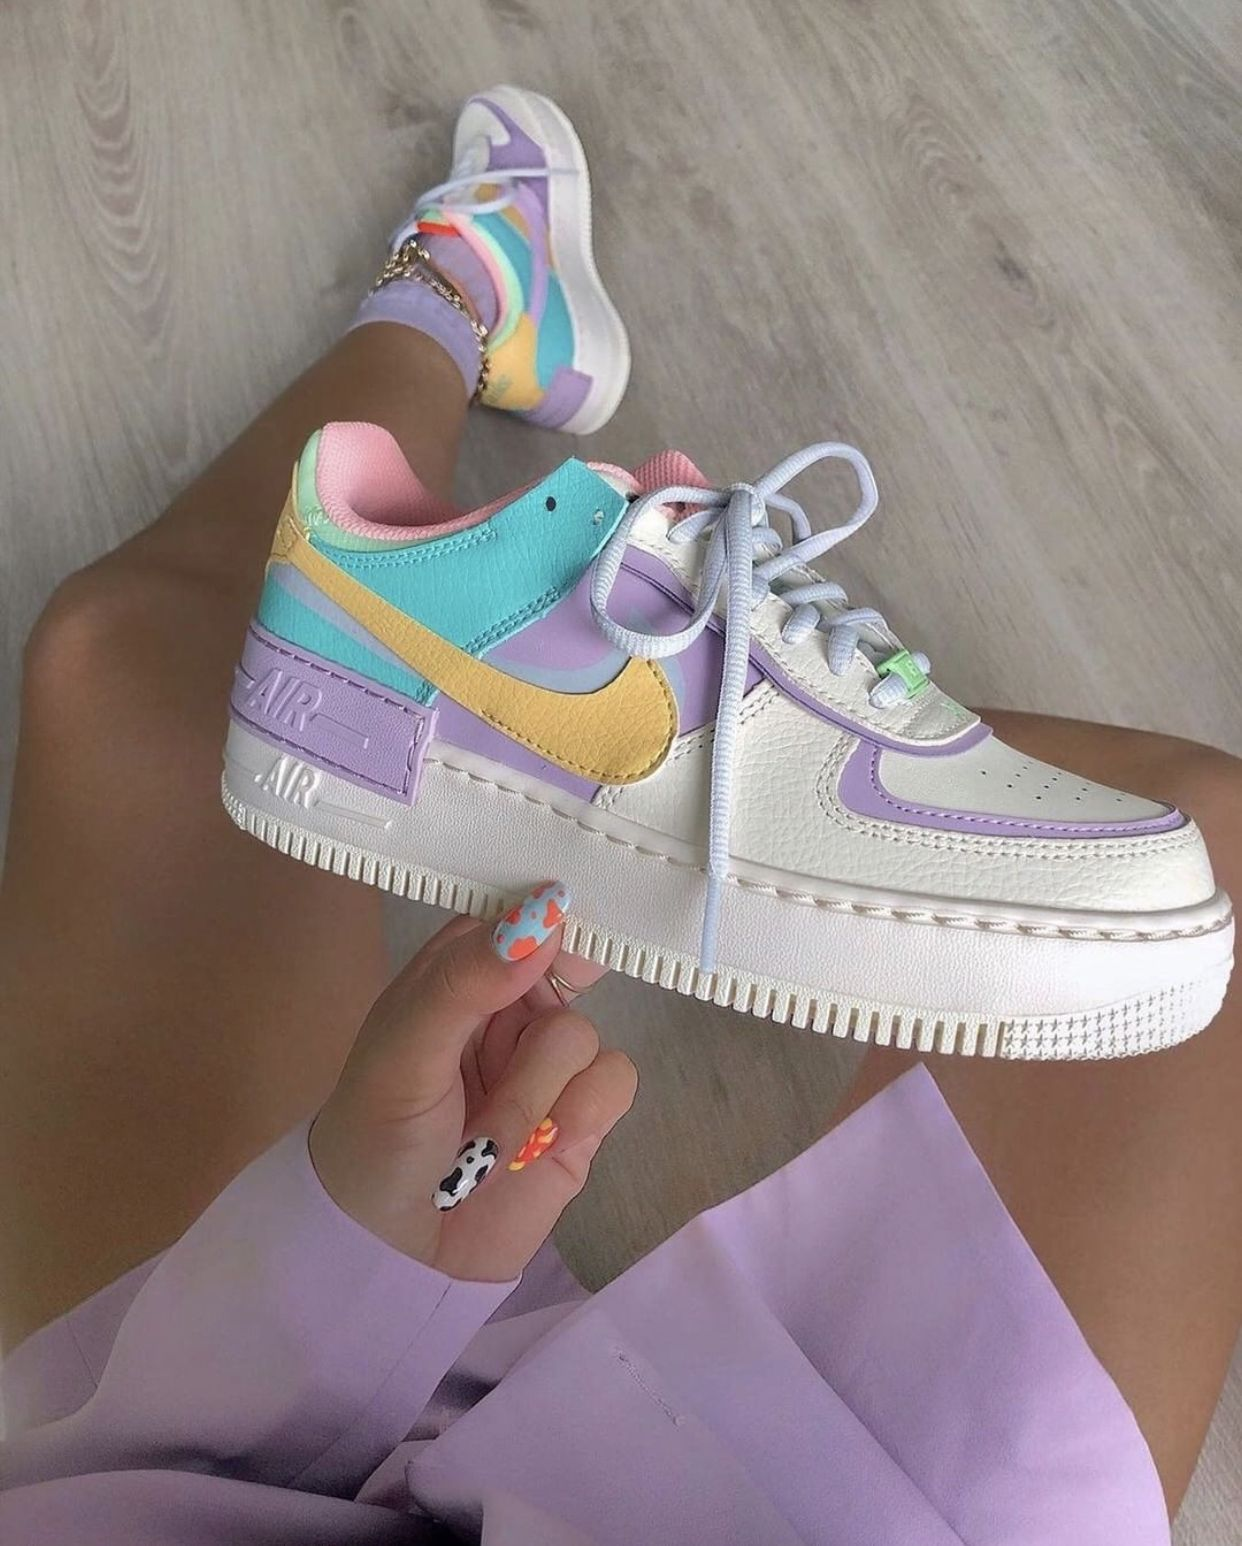 nike air force 1 donna arcobaleno